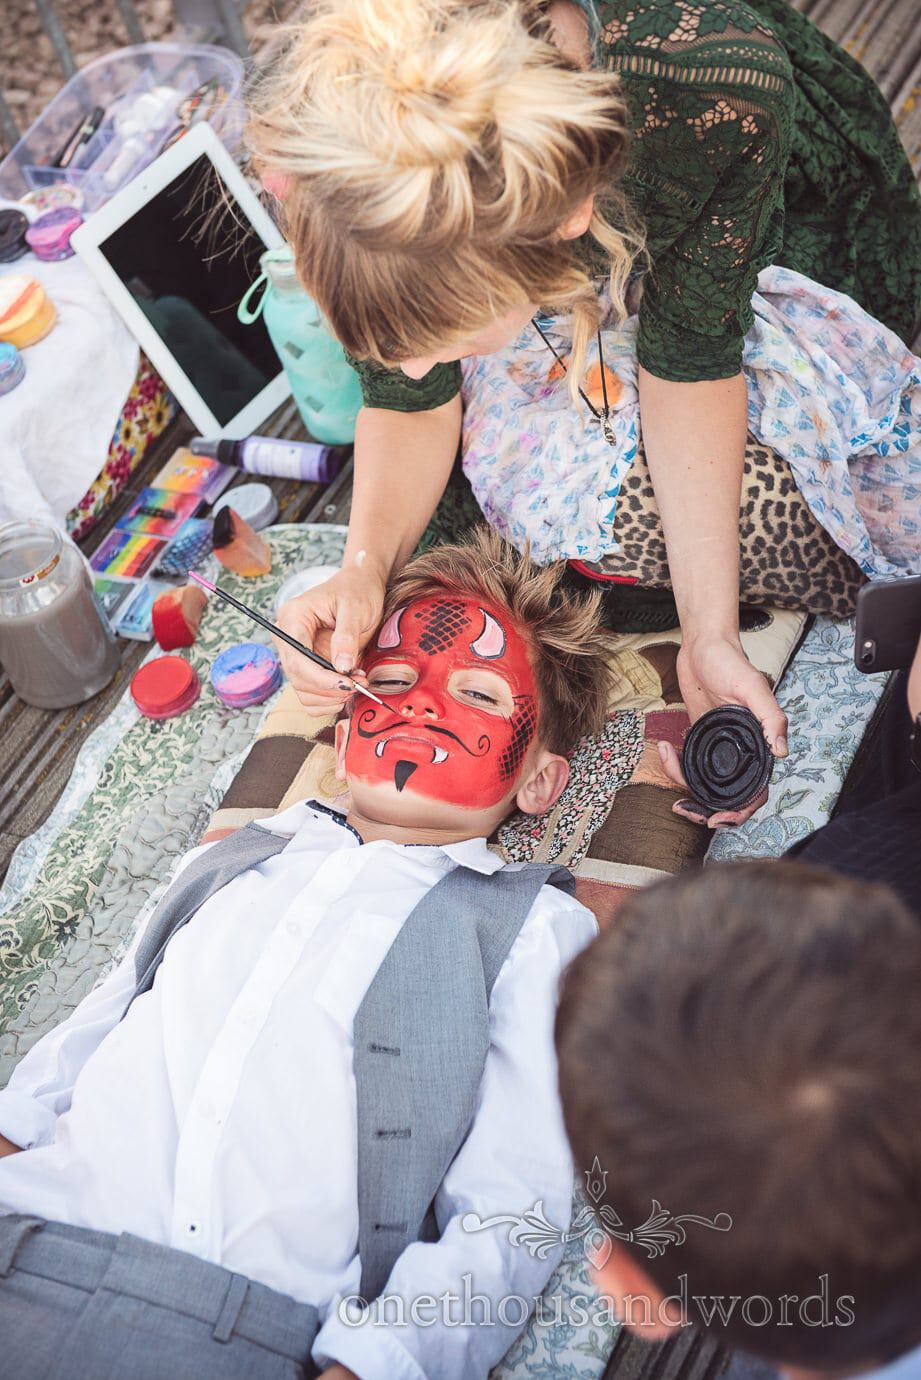 Wedding face painting devil face by Swanage wedding photographers one thousand words